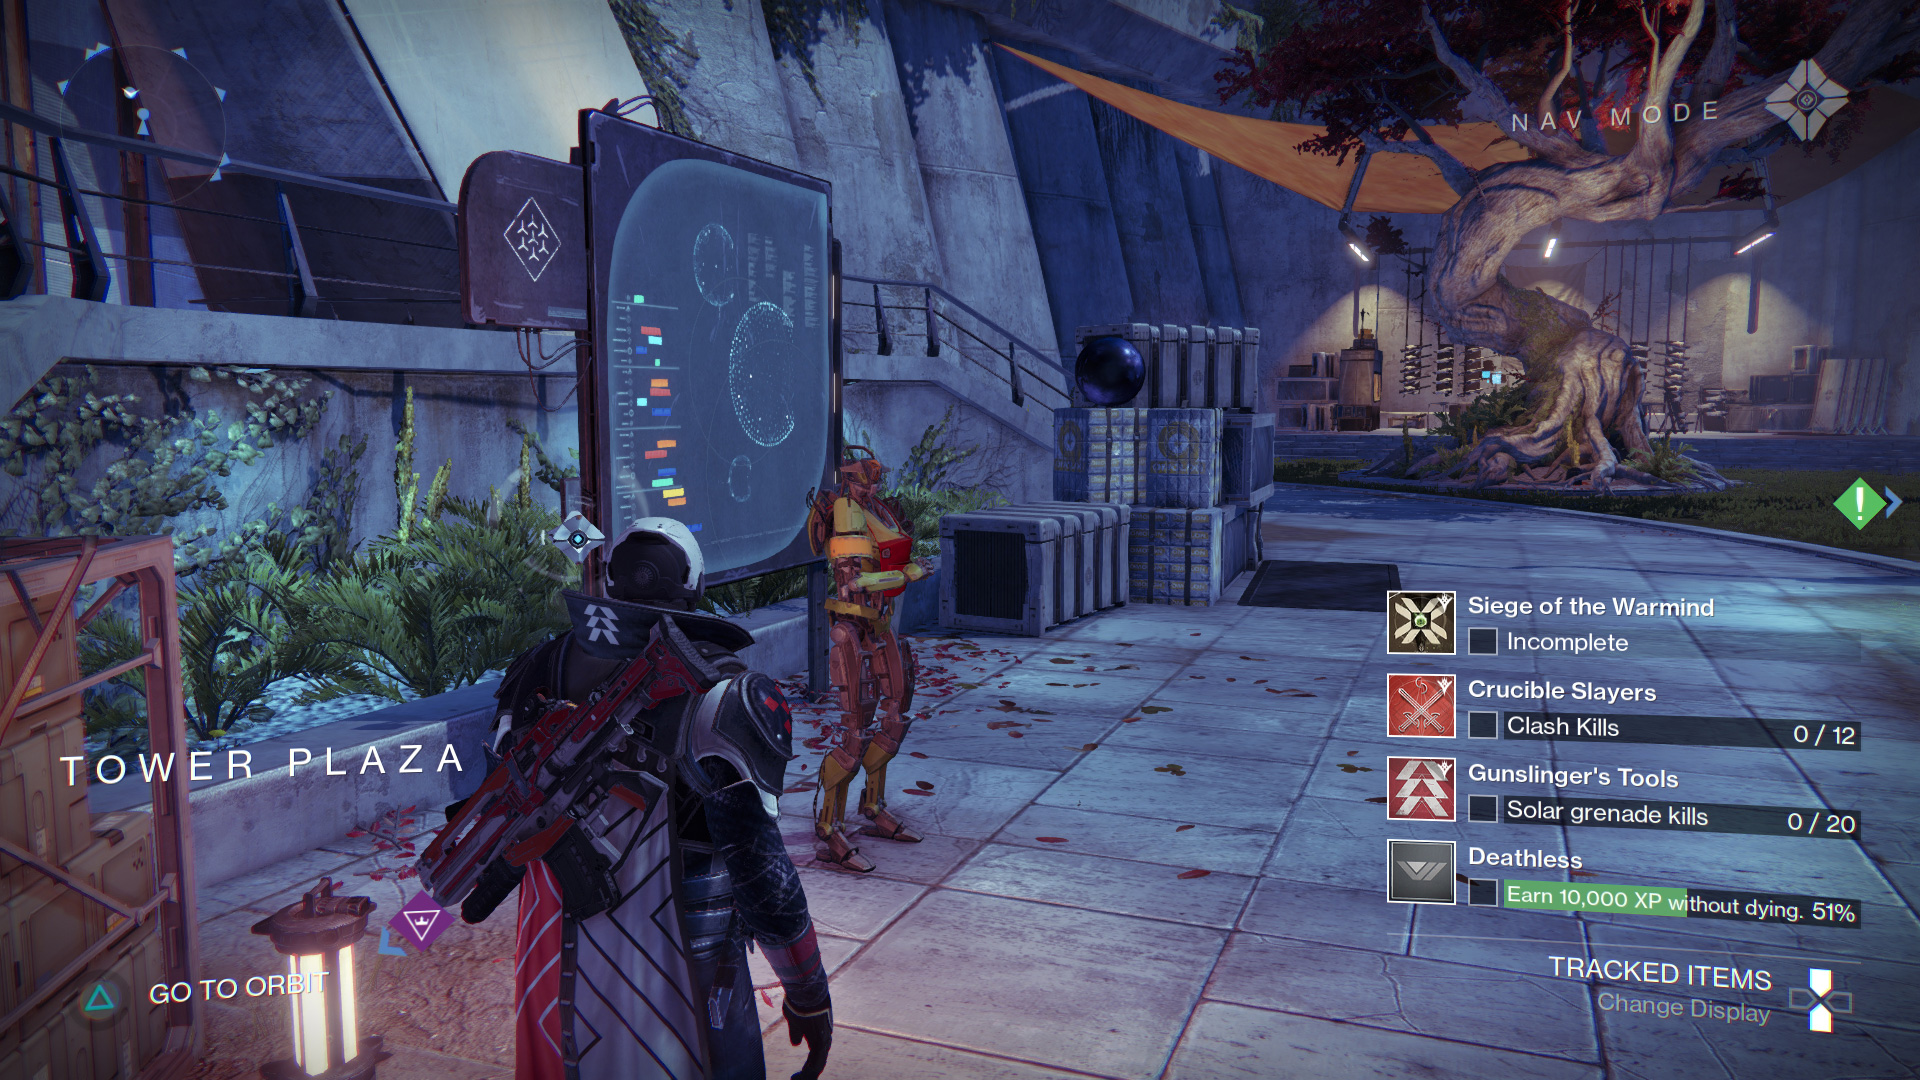 Destiny quest hud